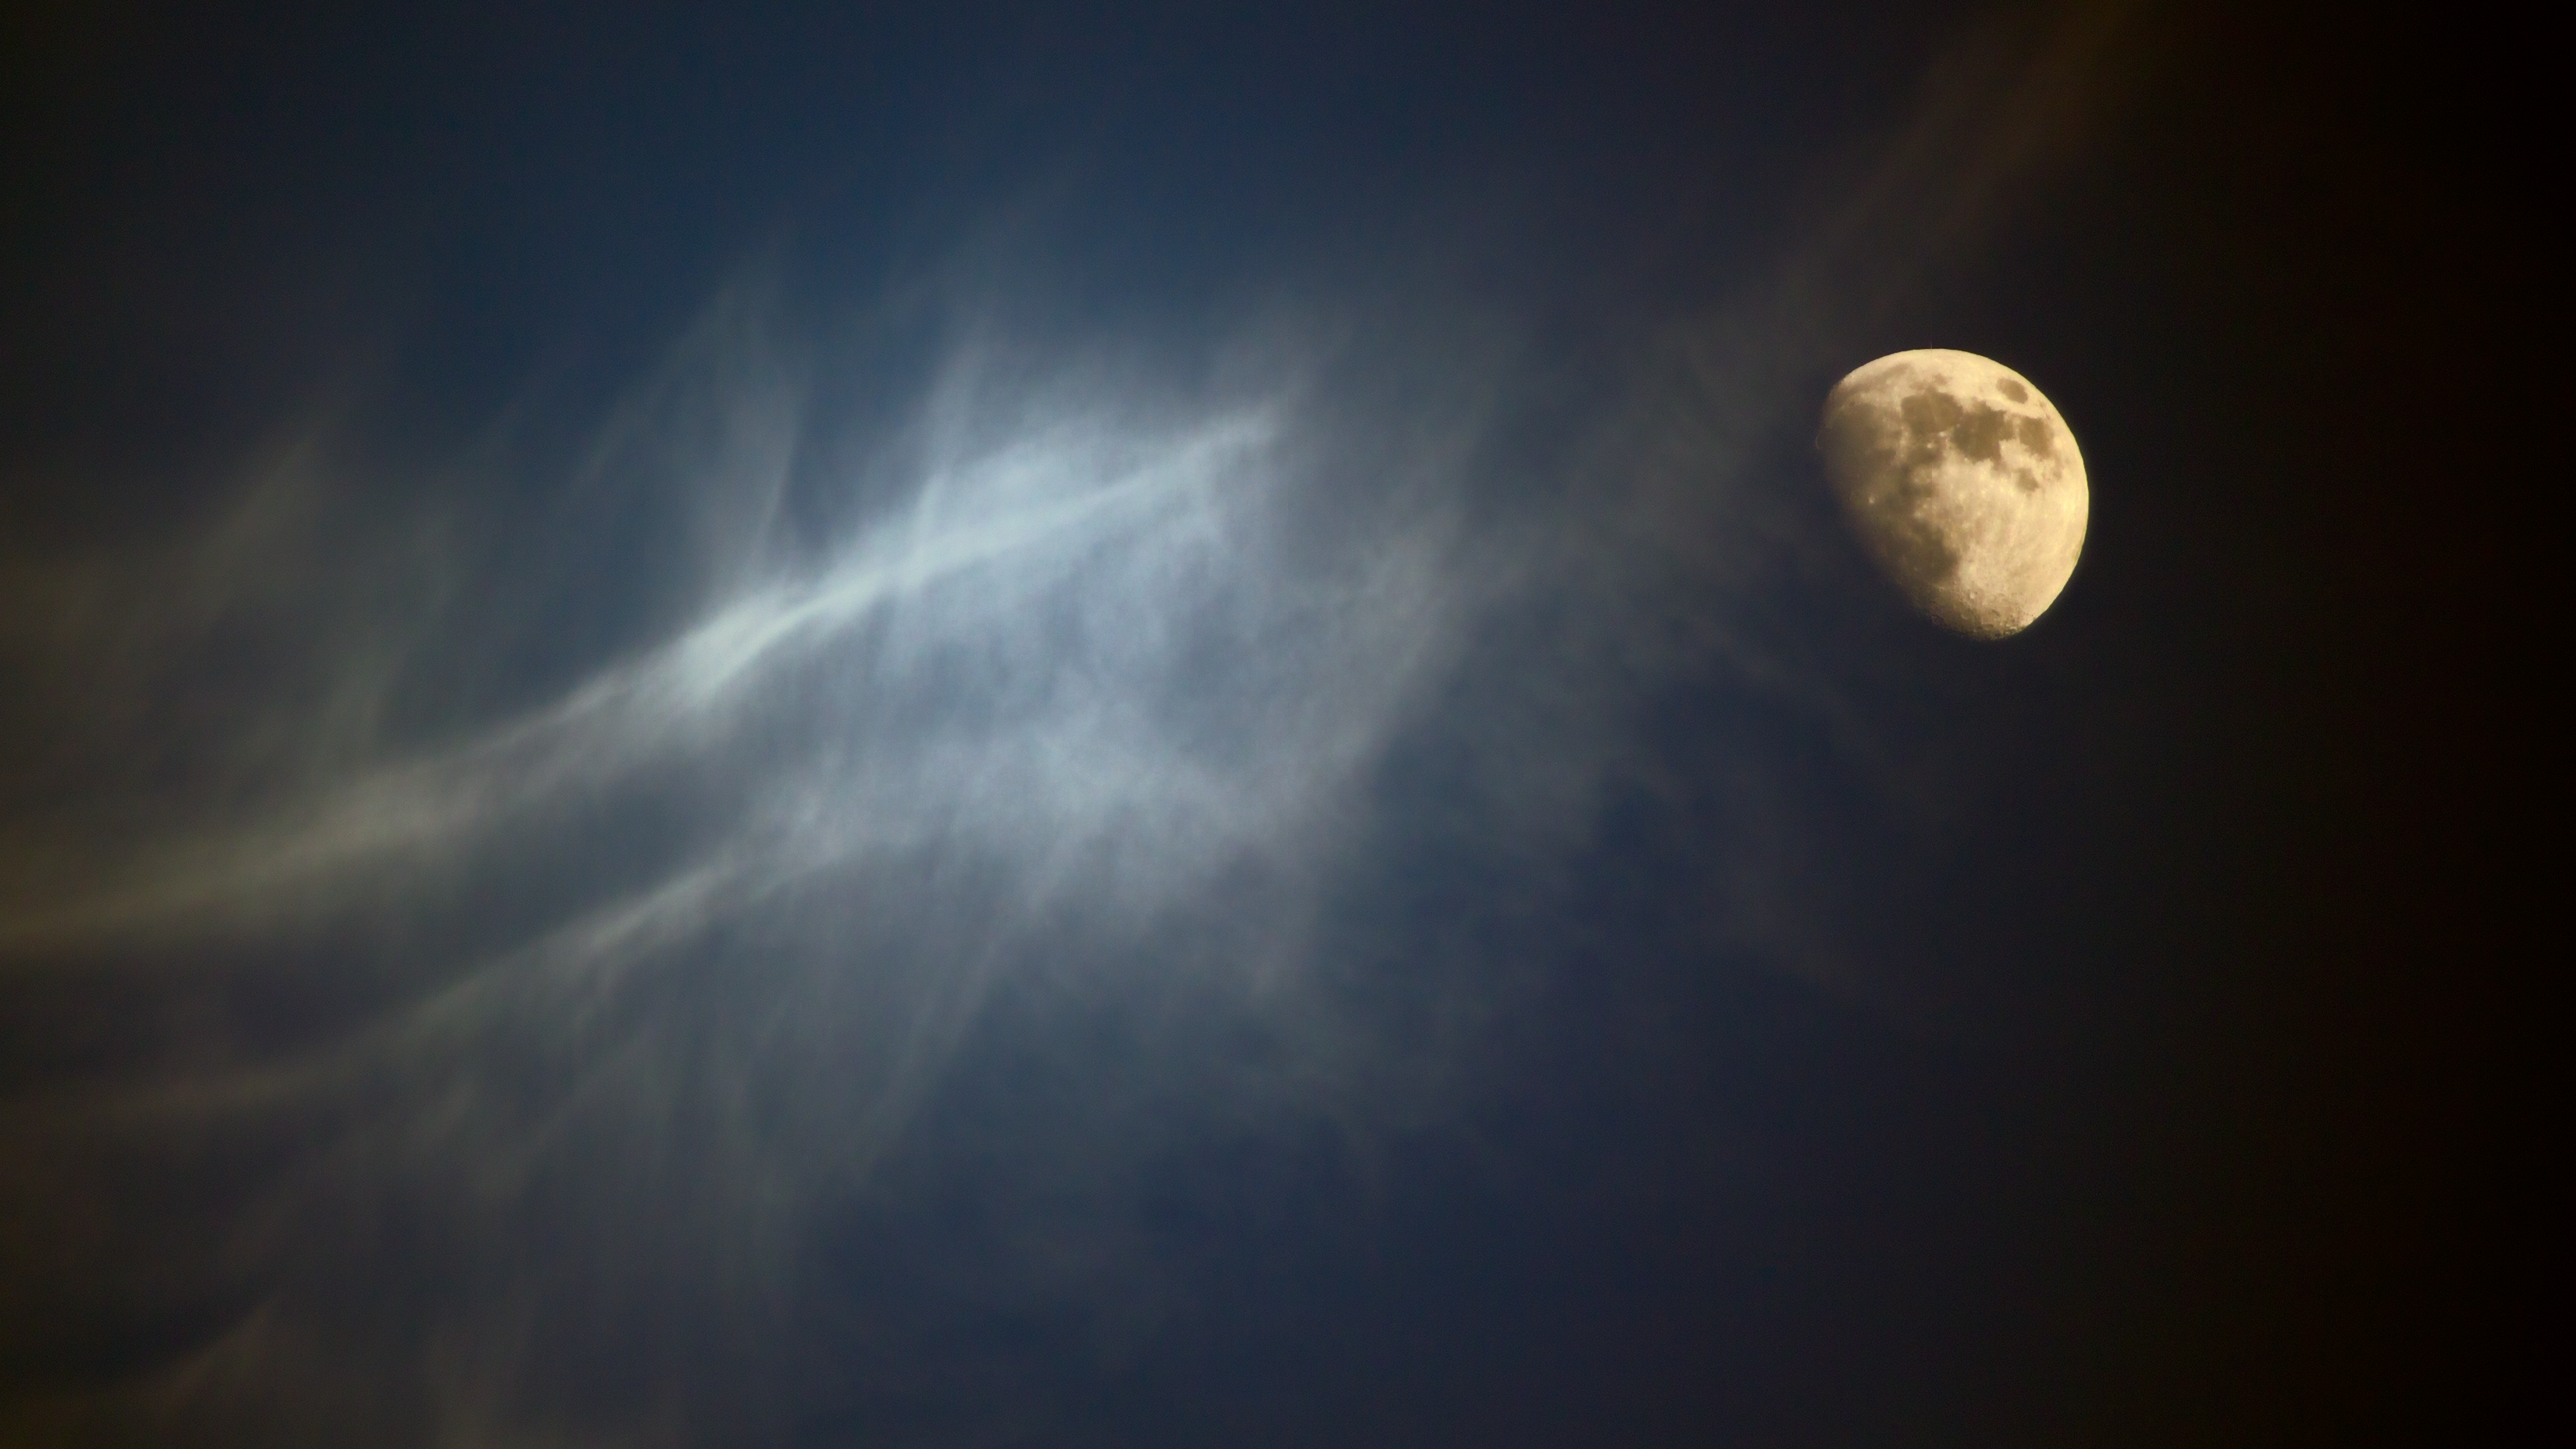 A waning moon on a cloudy night sky